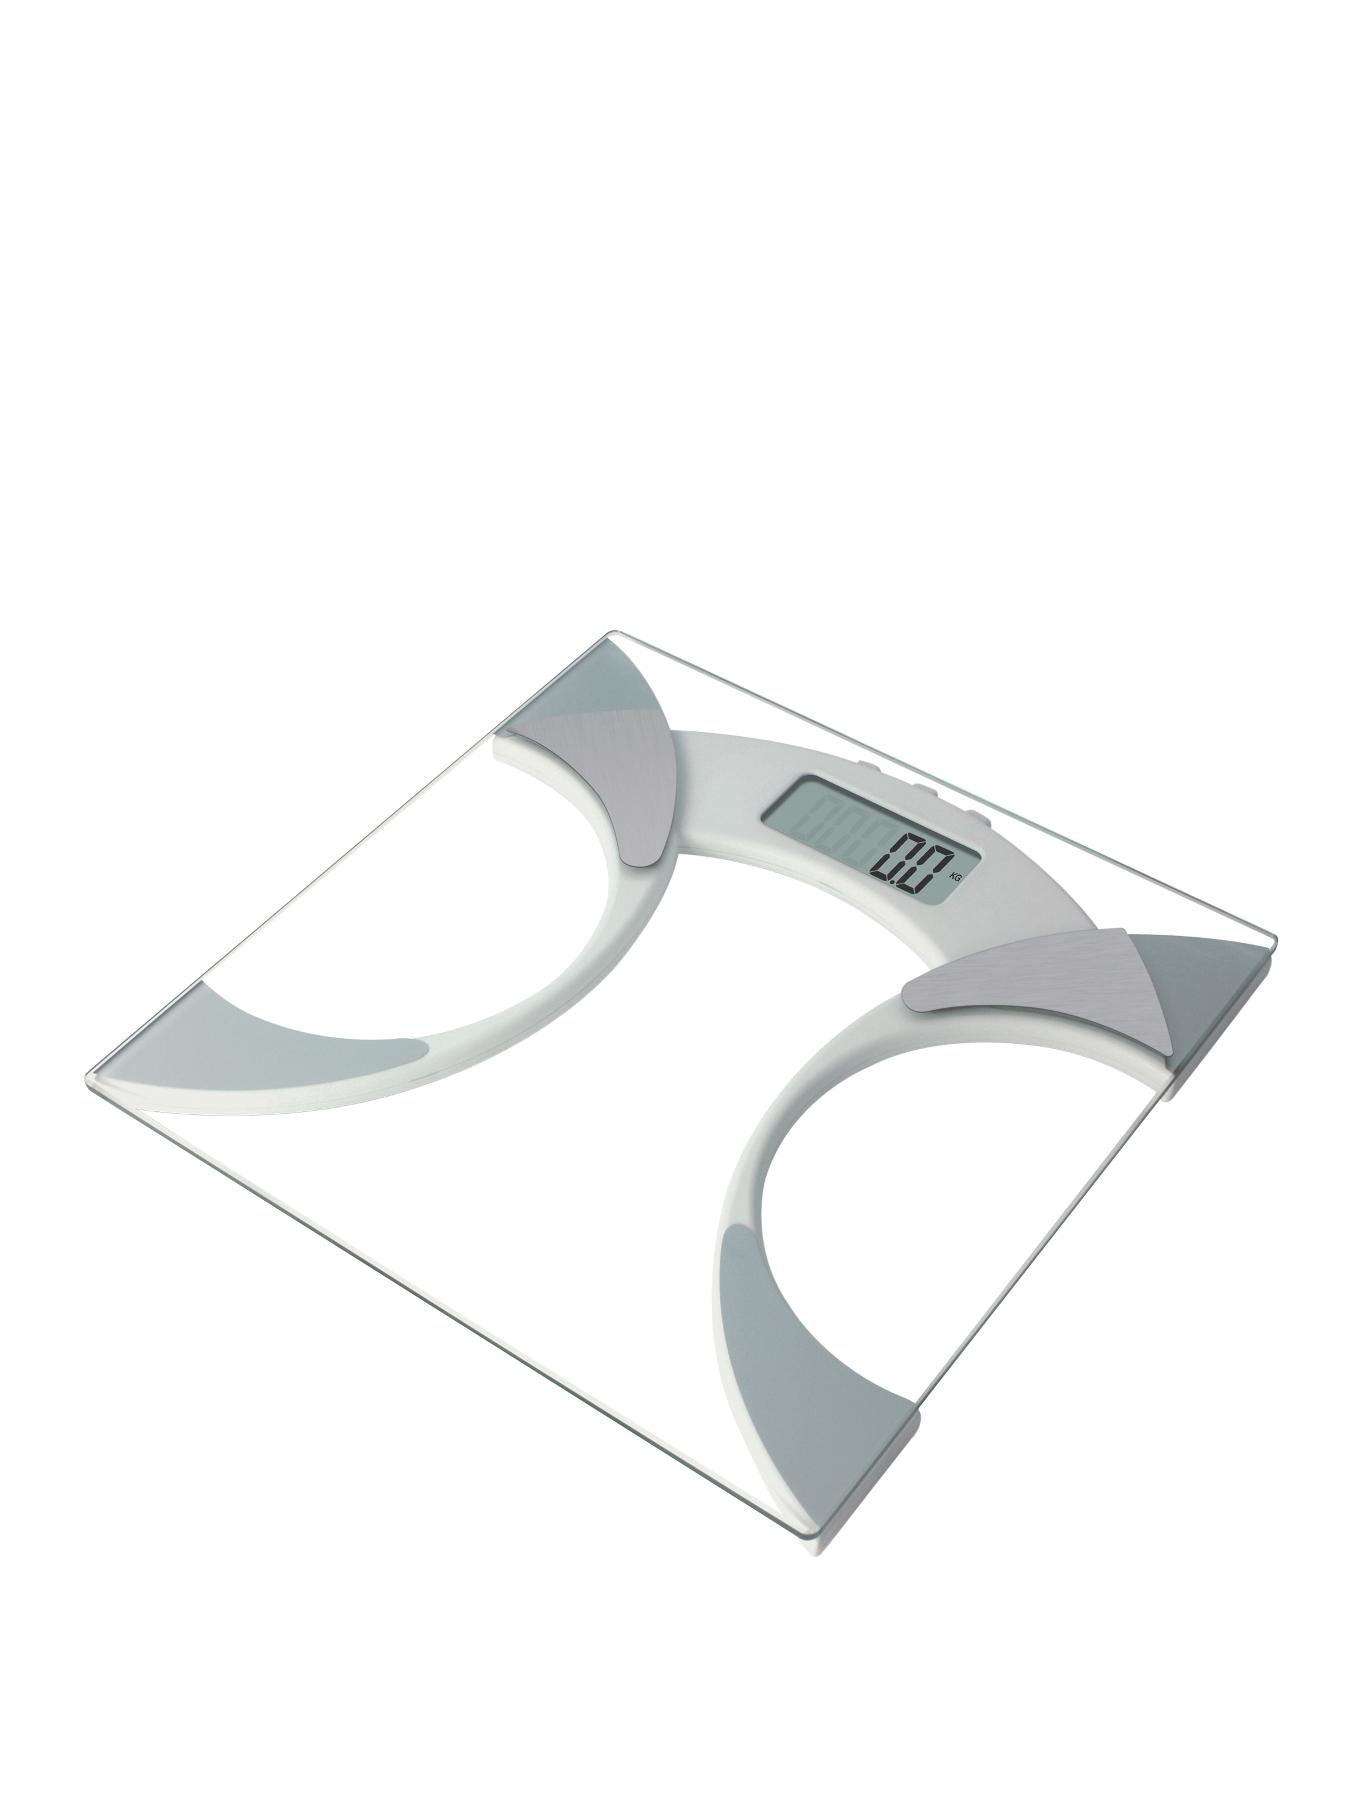 Ultra Slim Glass Analyser Scale